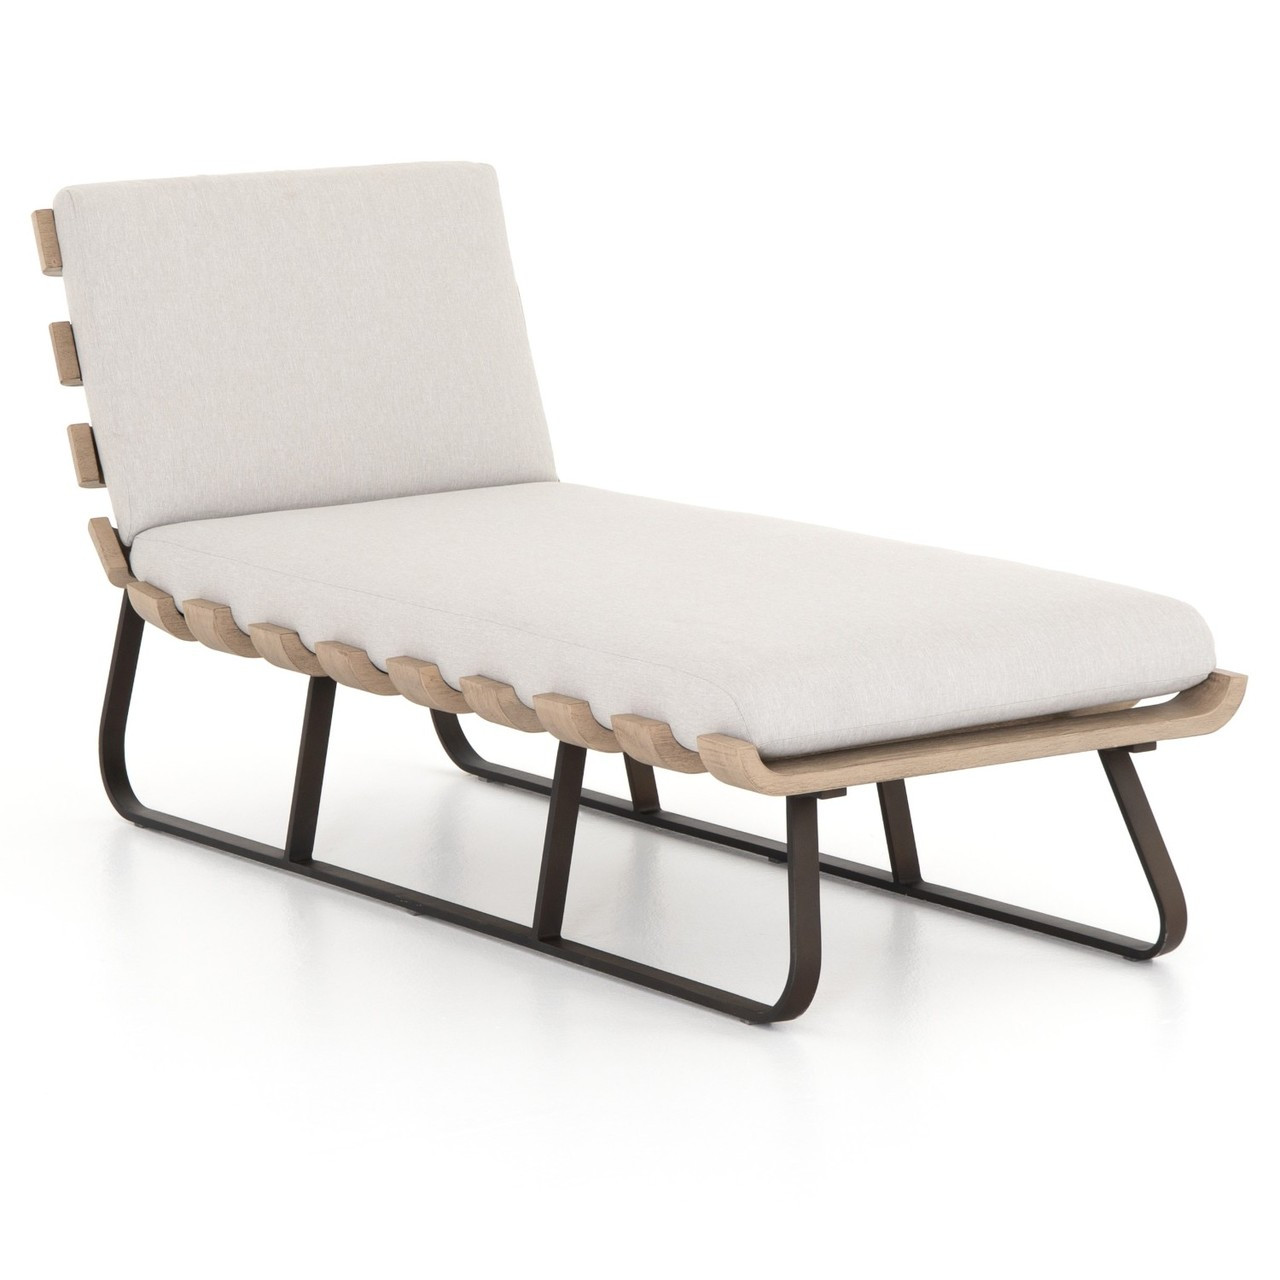 - Dimitri Teak Wood Grey Outdoor Chaise Lounge Daybed Zin Home